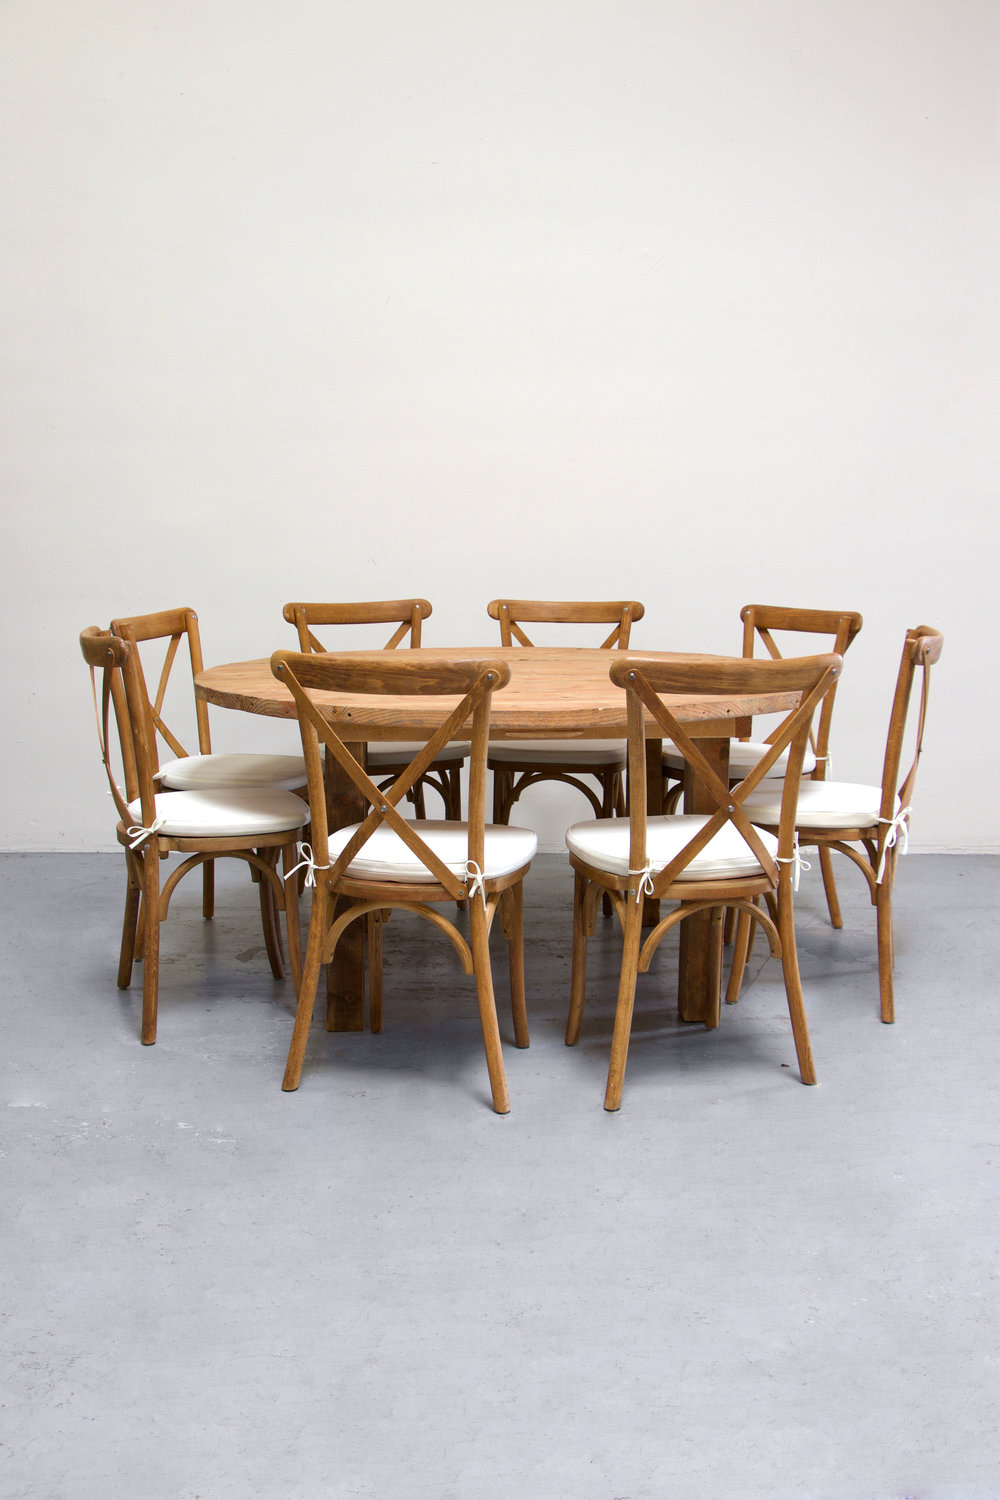 Honey Brown Round Farm Table w/ 8 Cross-Back Chairs $145